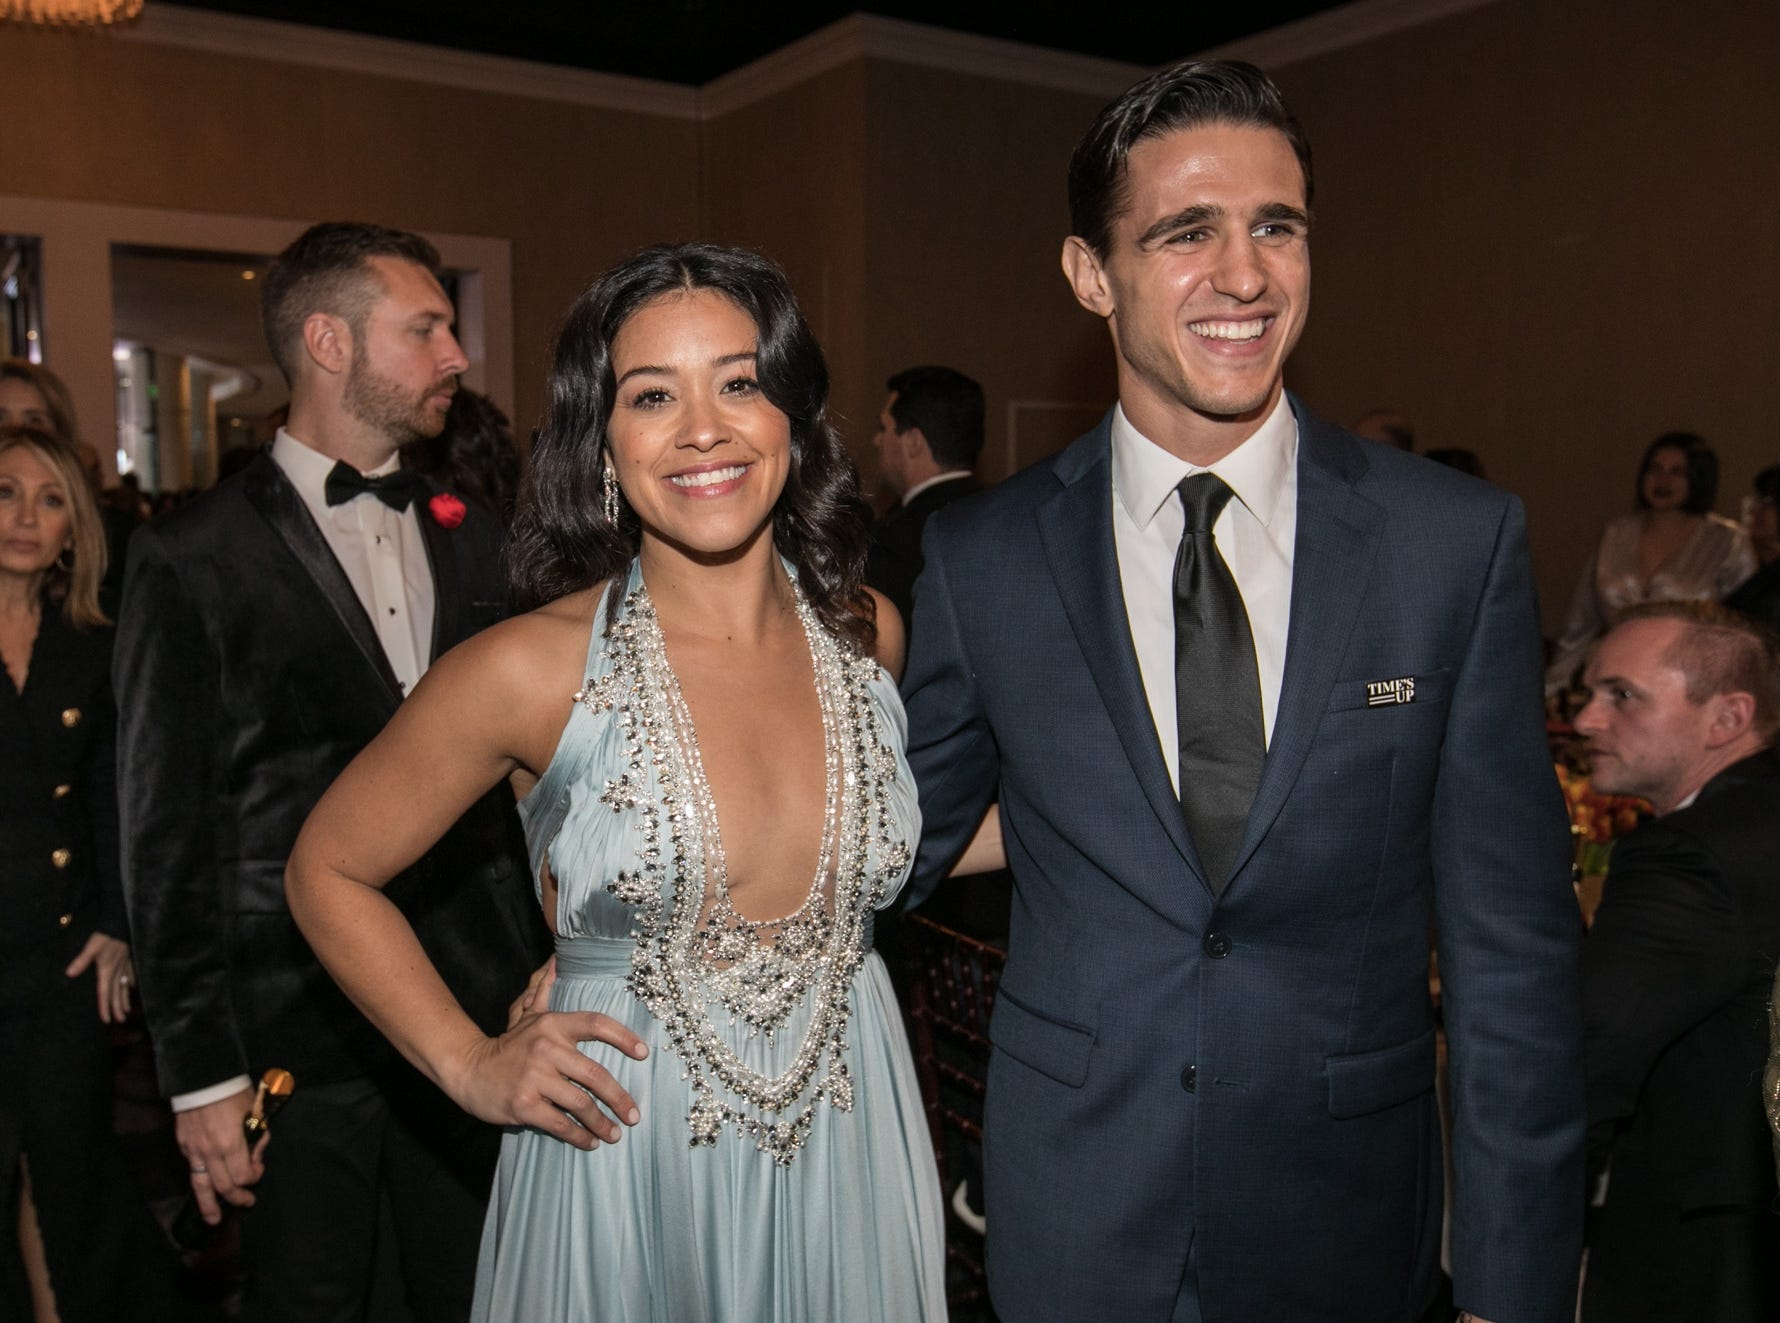 Jan 6, 2019; Beverly Hills, CA, USA; Gina Rodriguez and  Joe LoCicero arrives during the 76th Golden Globe Awards in the International Ballroom at the Beverly Hilton. Mandatory Credit: David Sprague-USA TODAY (Via OlyDrop)